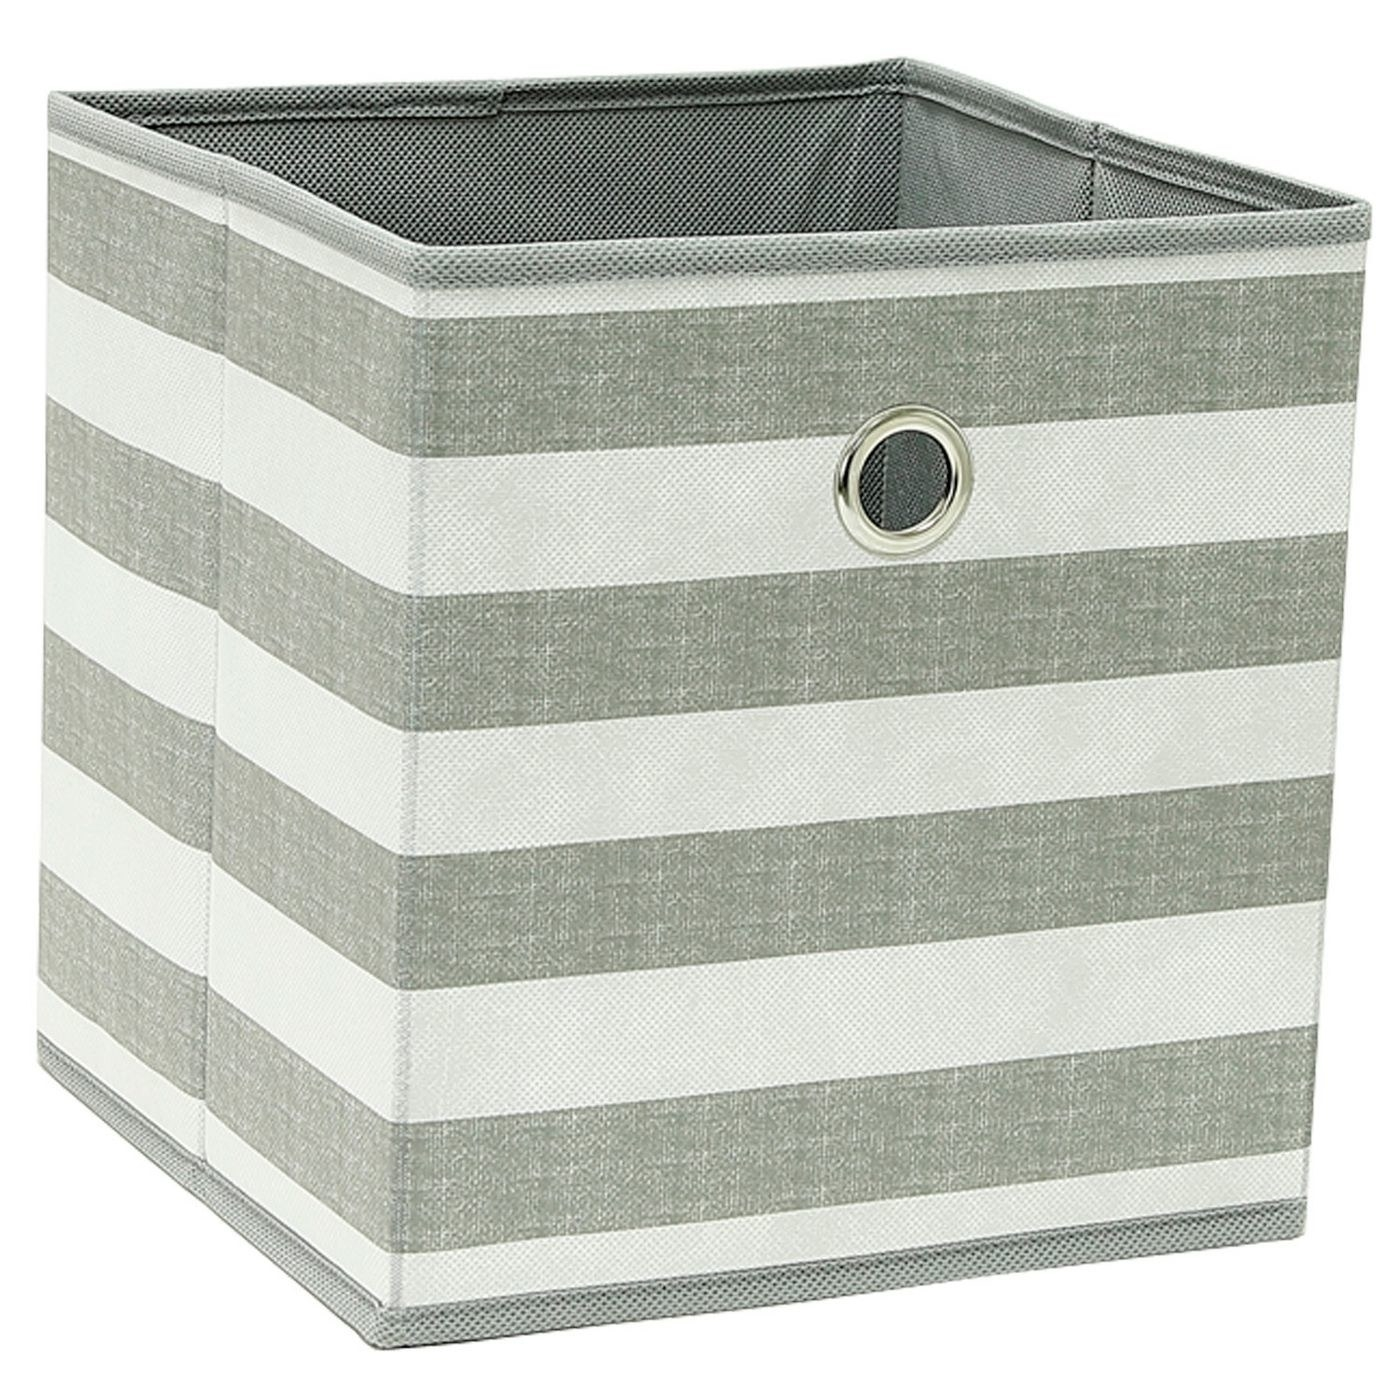 White and gray striped storage bin